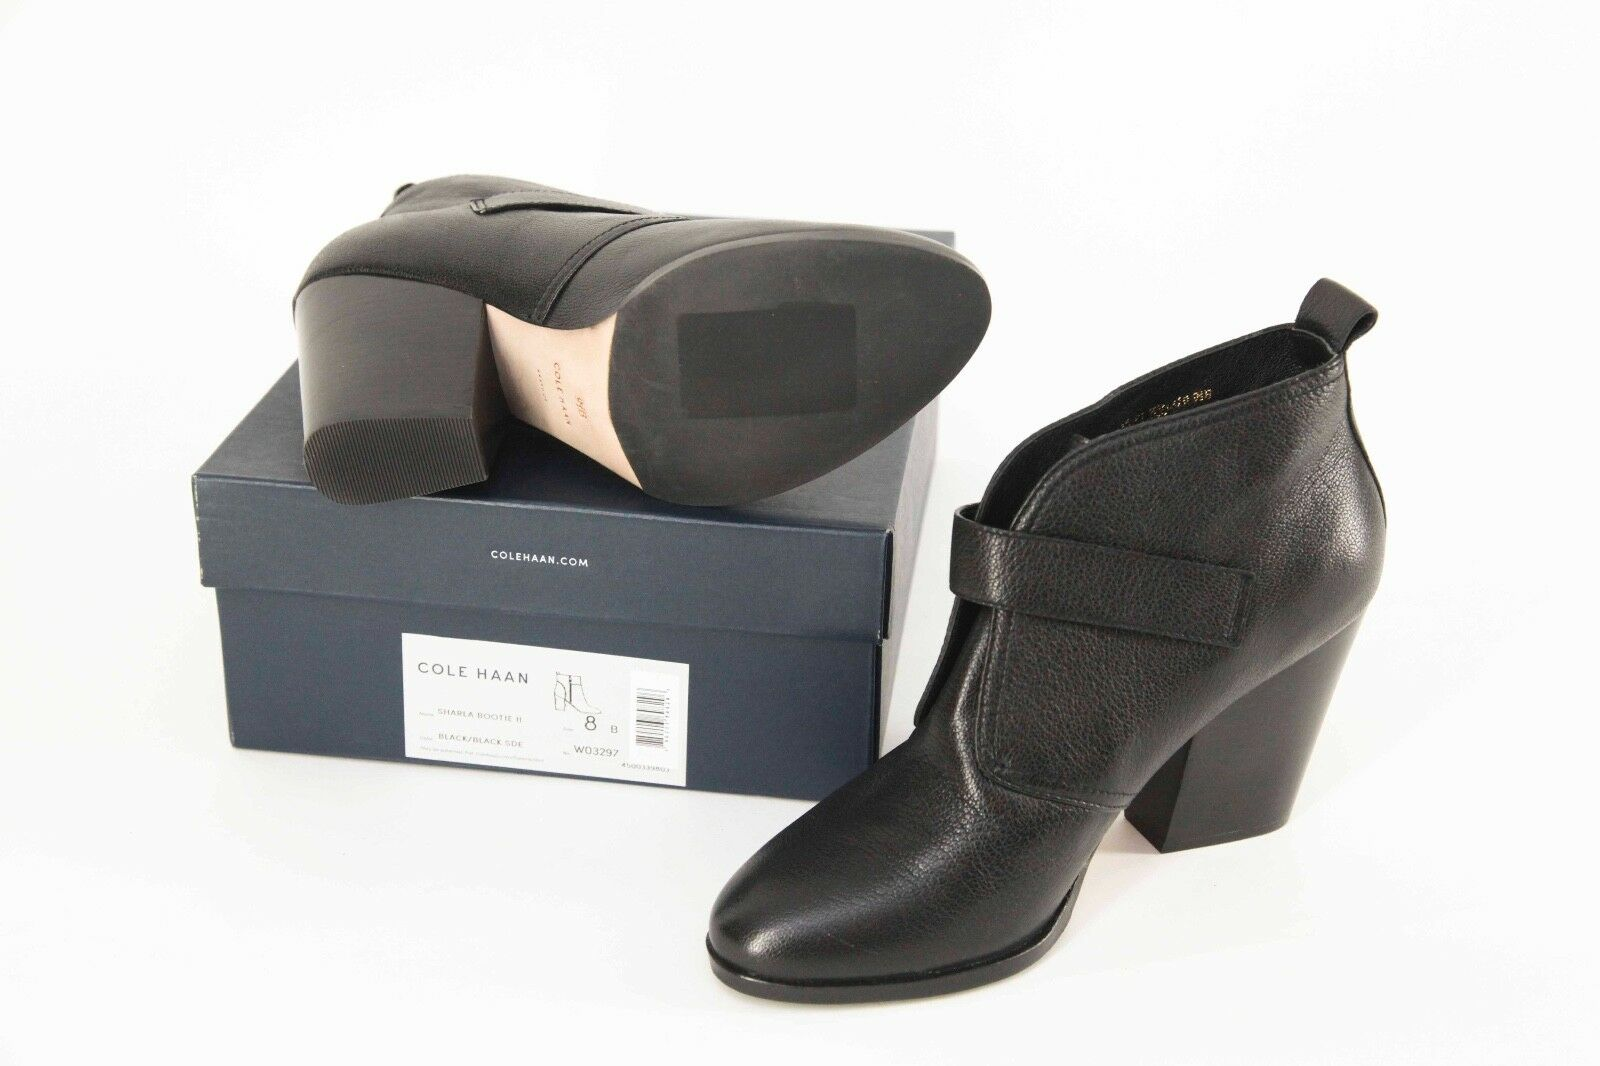 NEW w box box box  278 Cole Haan Black Leather Ankle Boots size 9.5 44e8cd